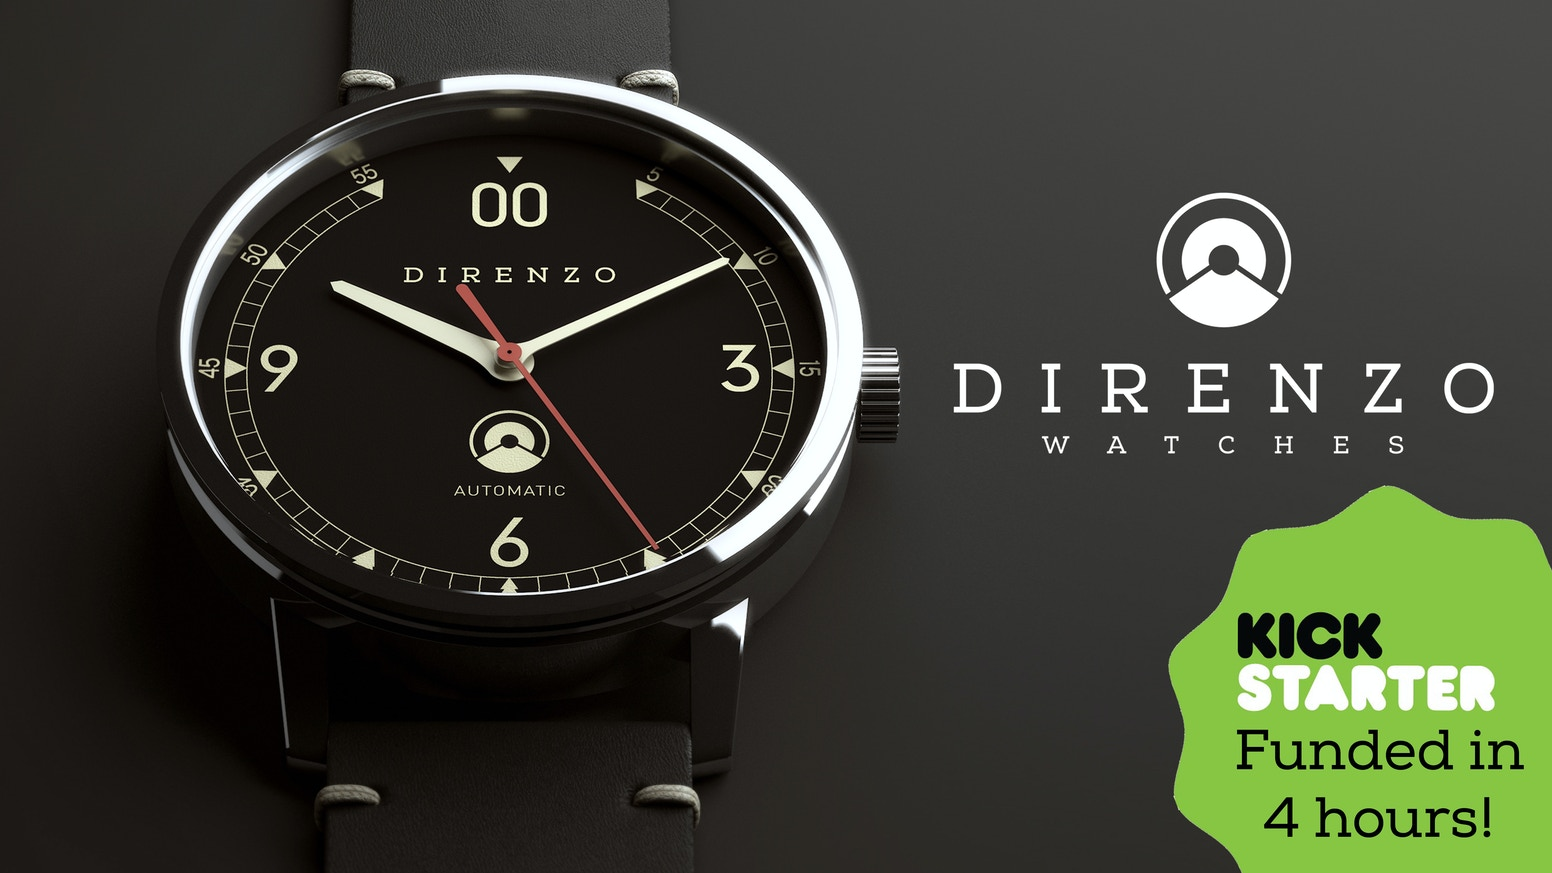 2a3feeb79cbe Direnzo watches by Direnzo watches — Kickstarter